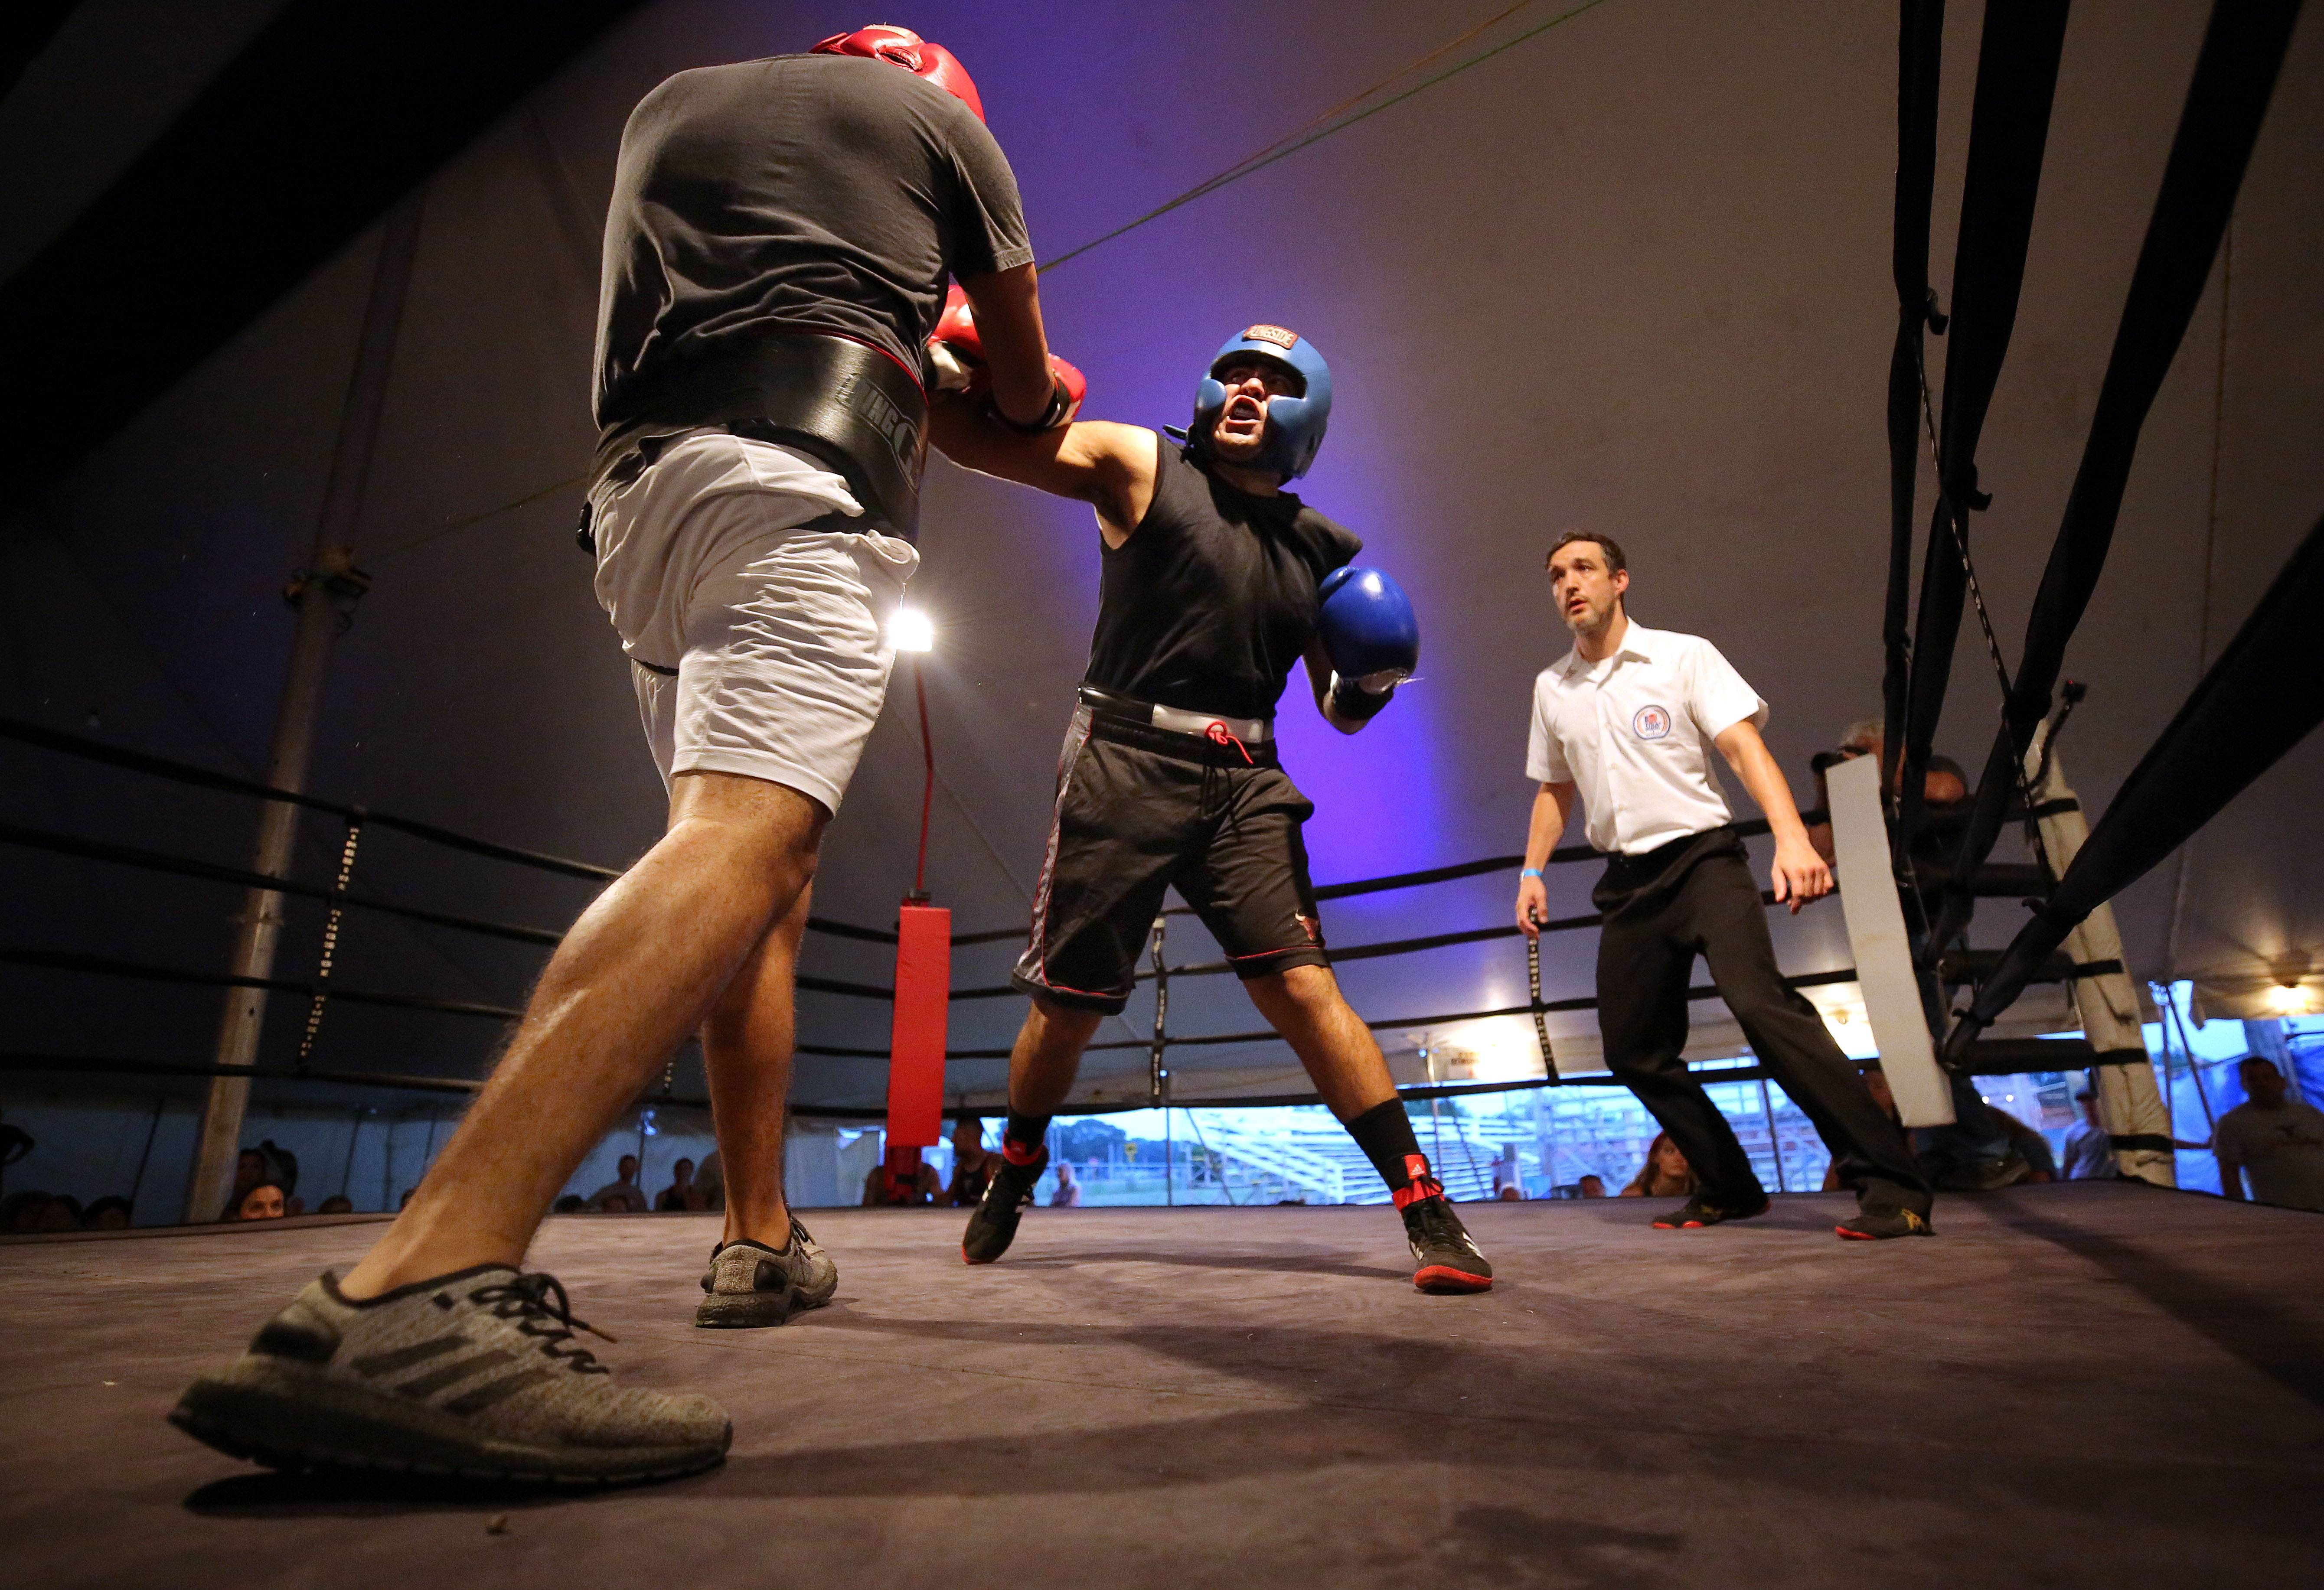 Omar Castro, right, and Eilas Miranda, both of Mundelein go toe-to-toe during the Badges vs. Bad Guys boxing event at the Wauconda Rodeo Friday night.